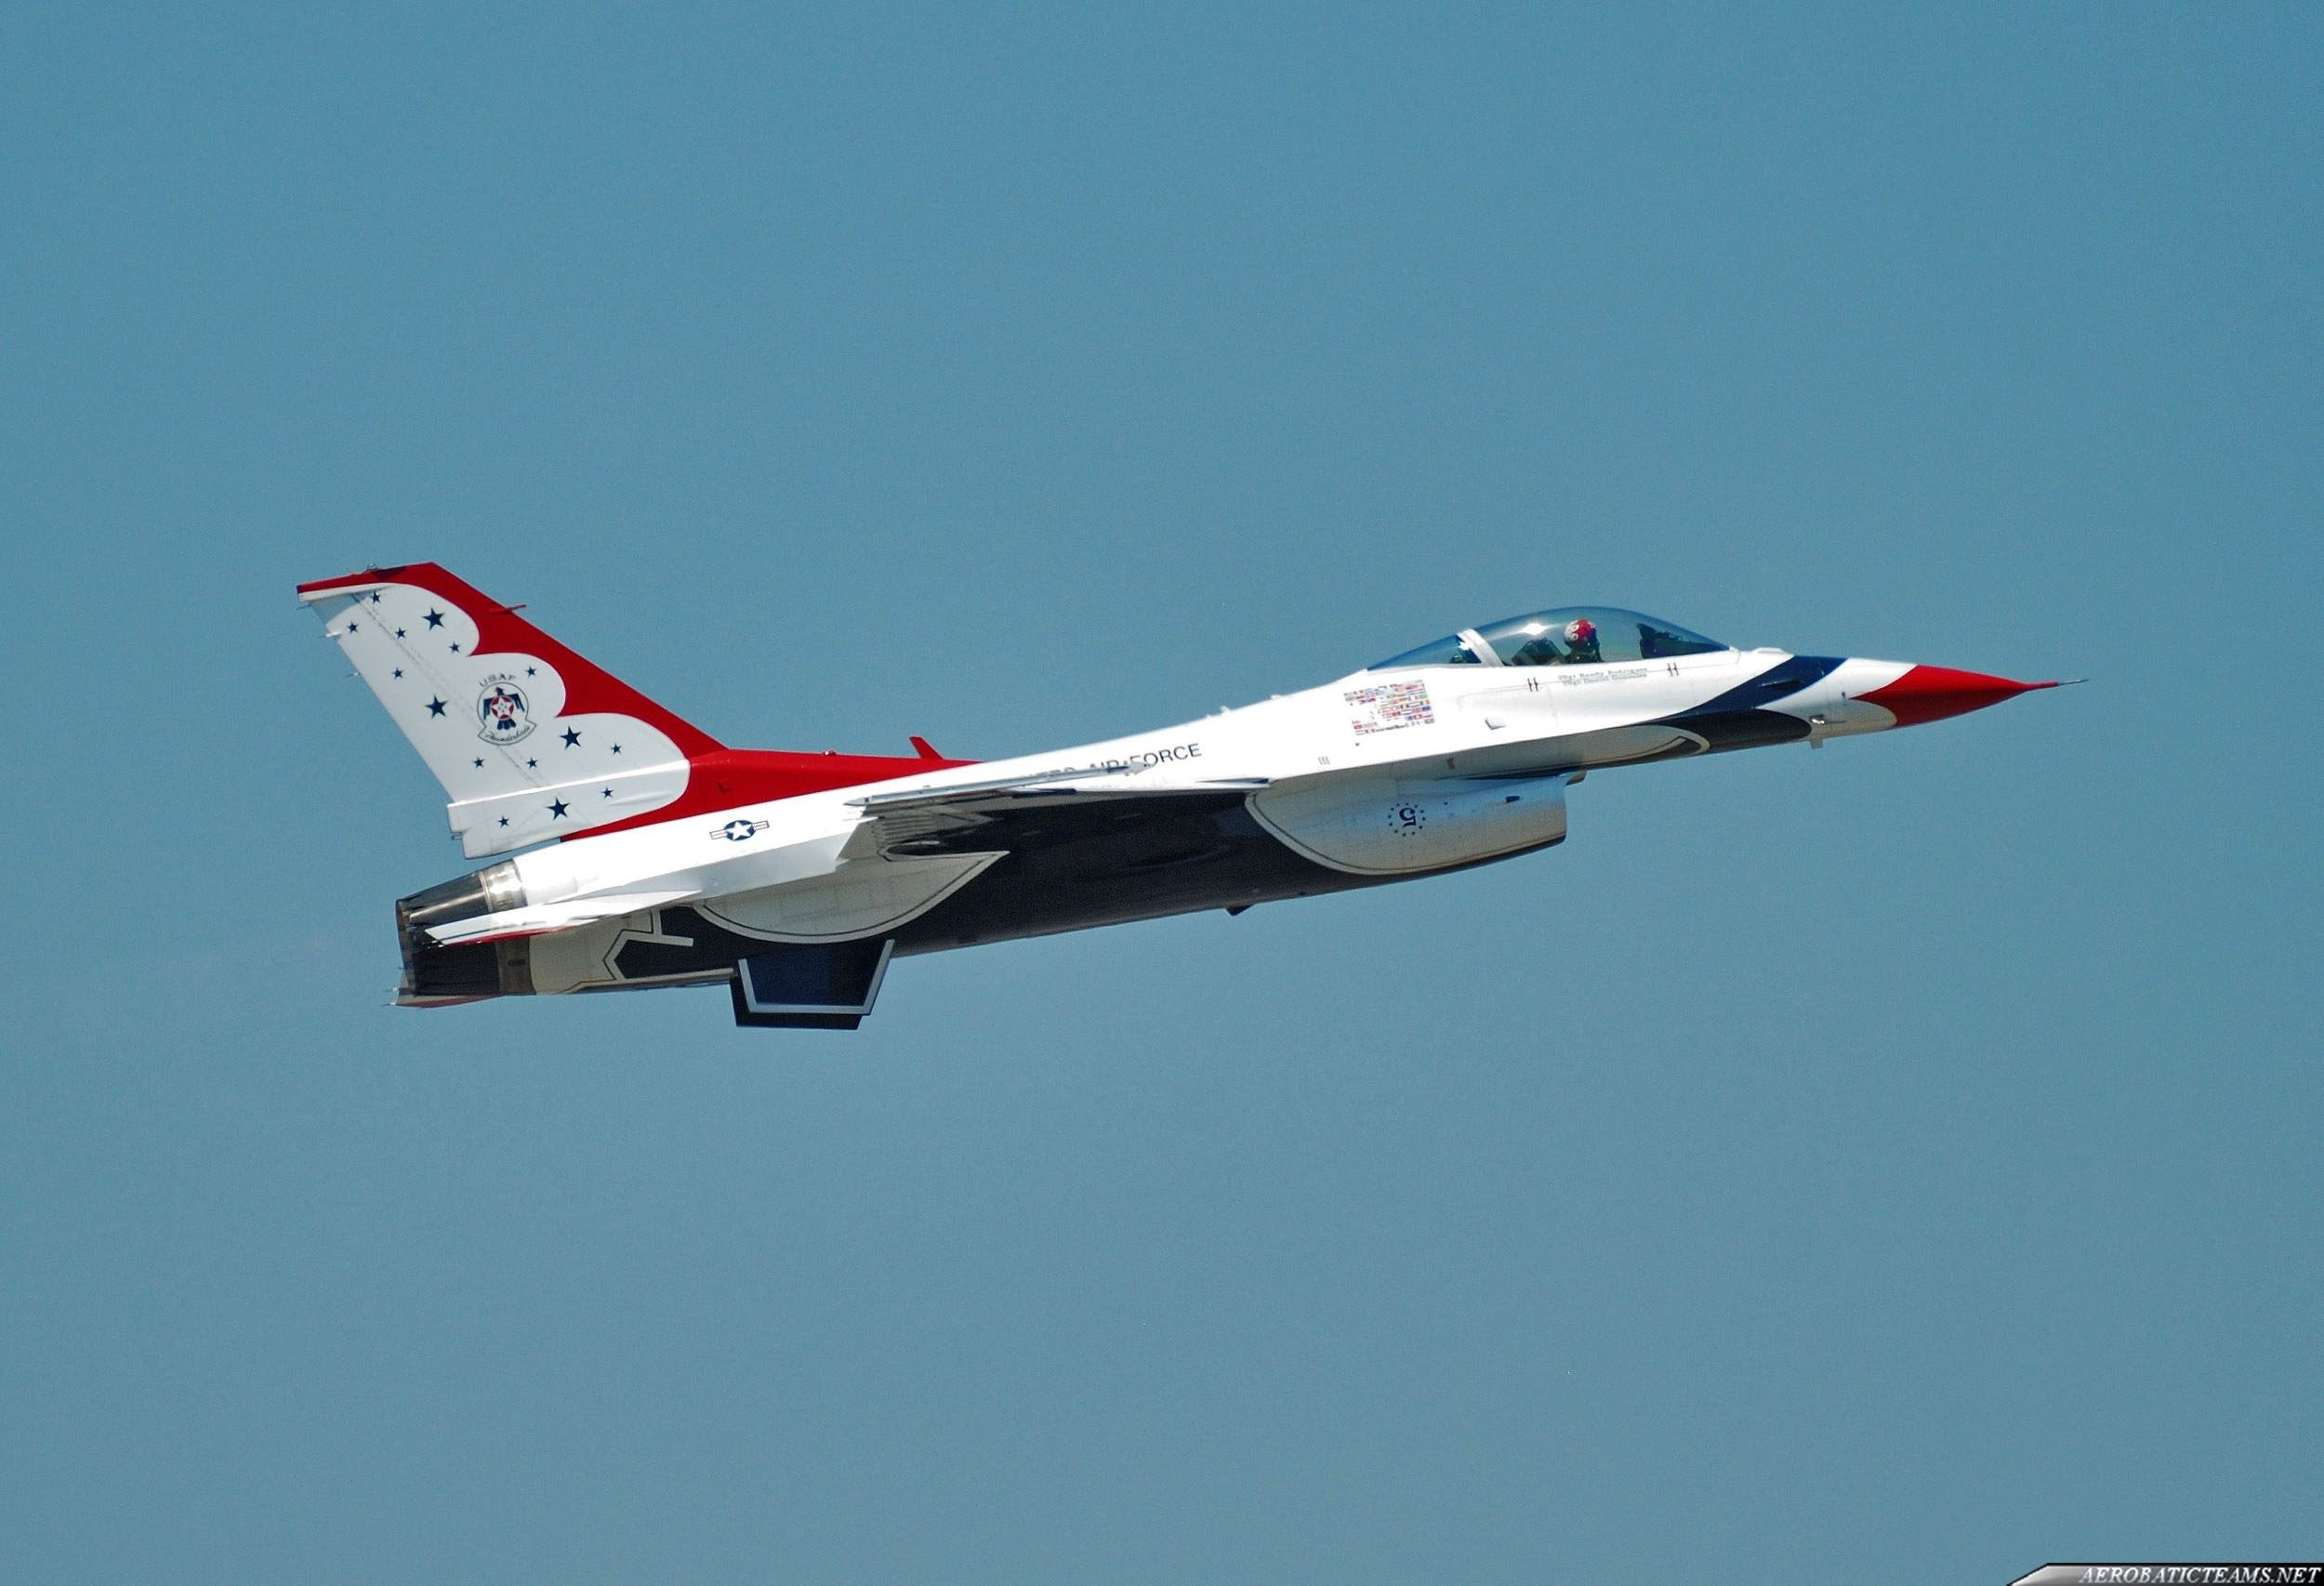 Thunderbirds announced 2011 show season officers